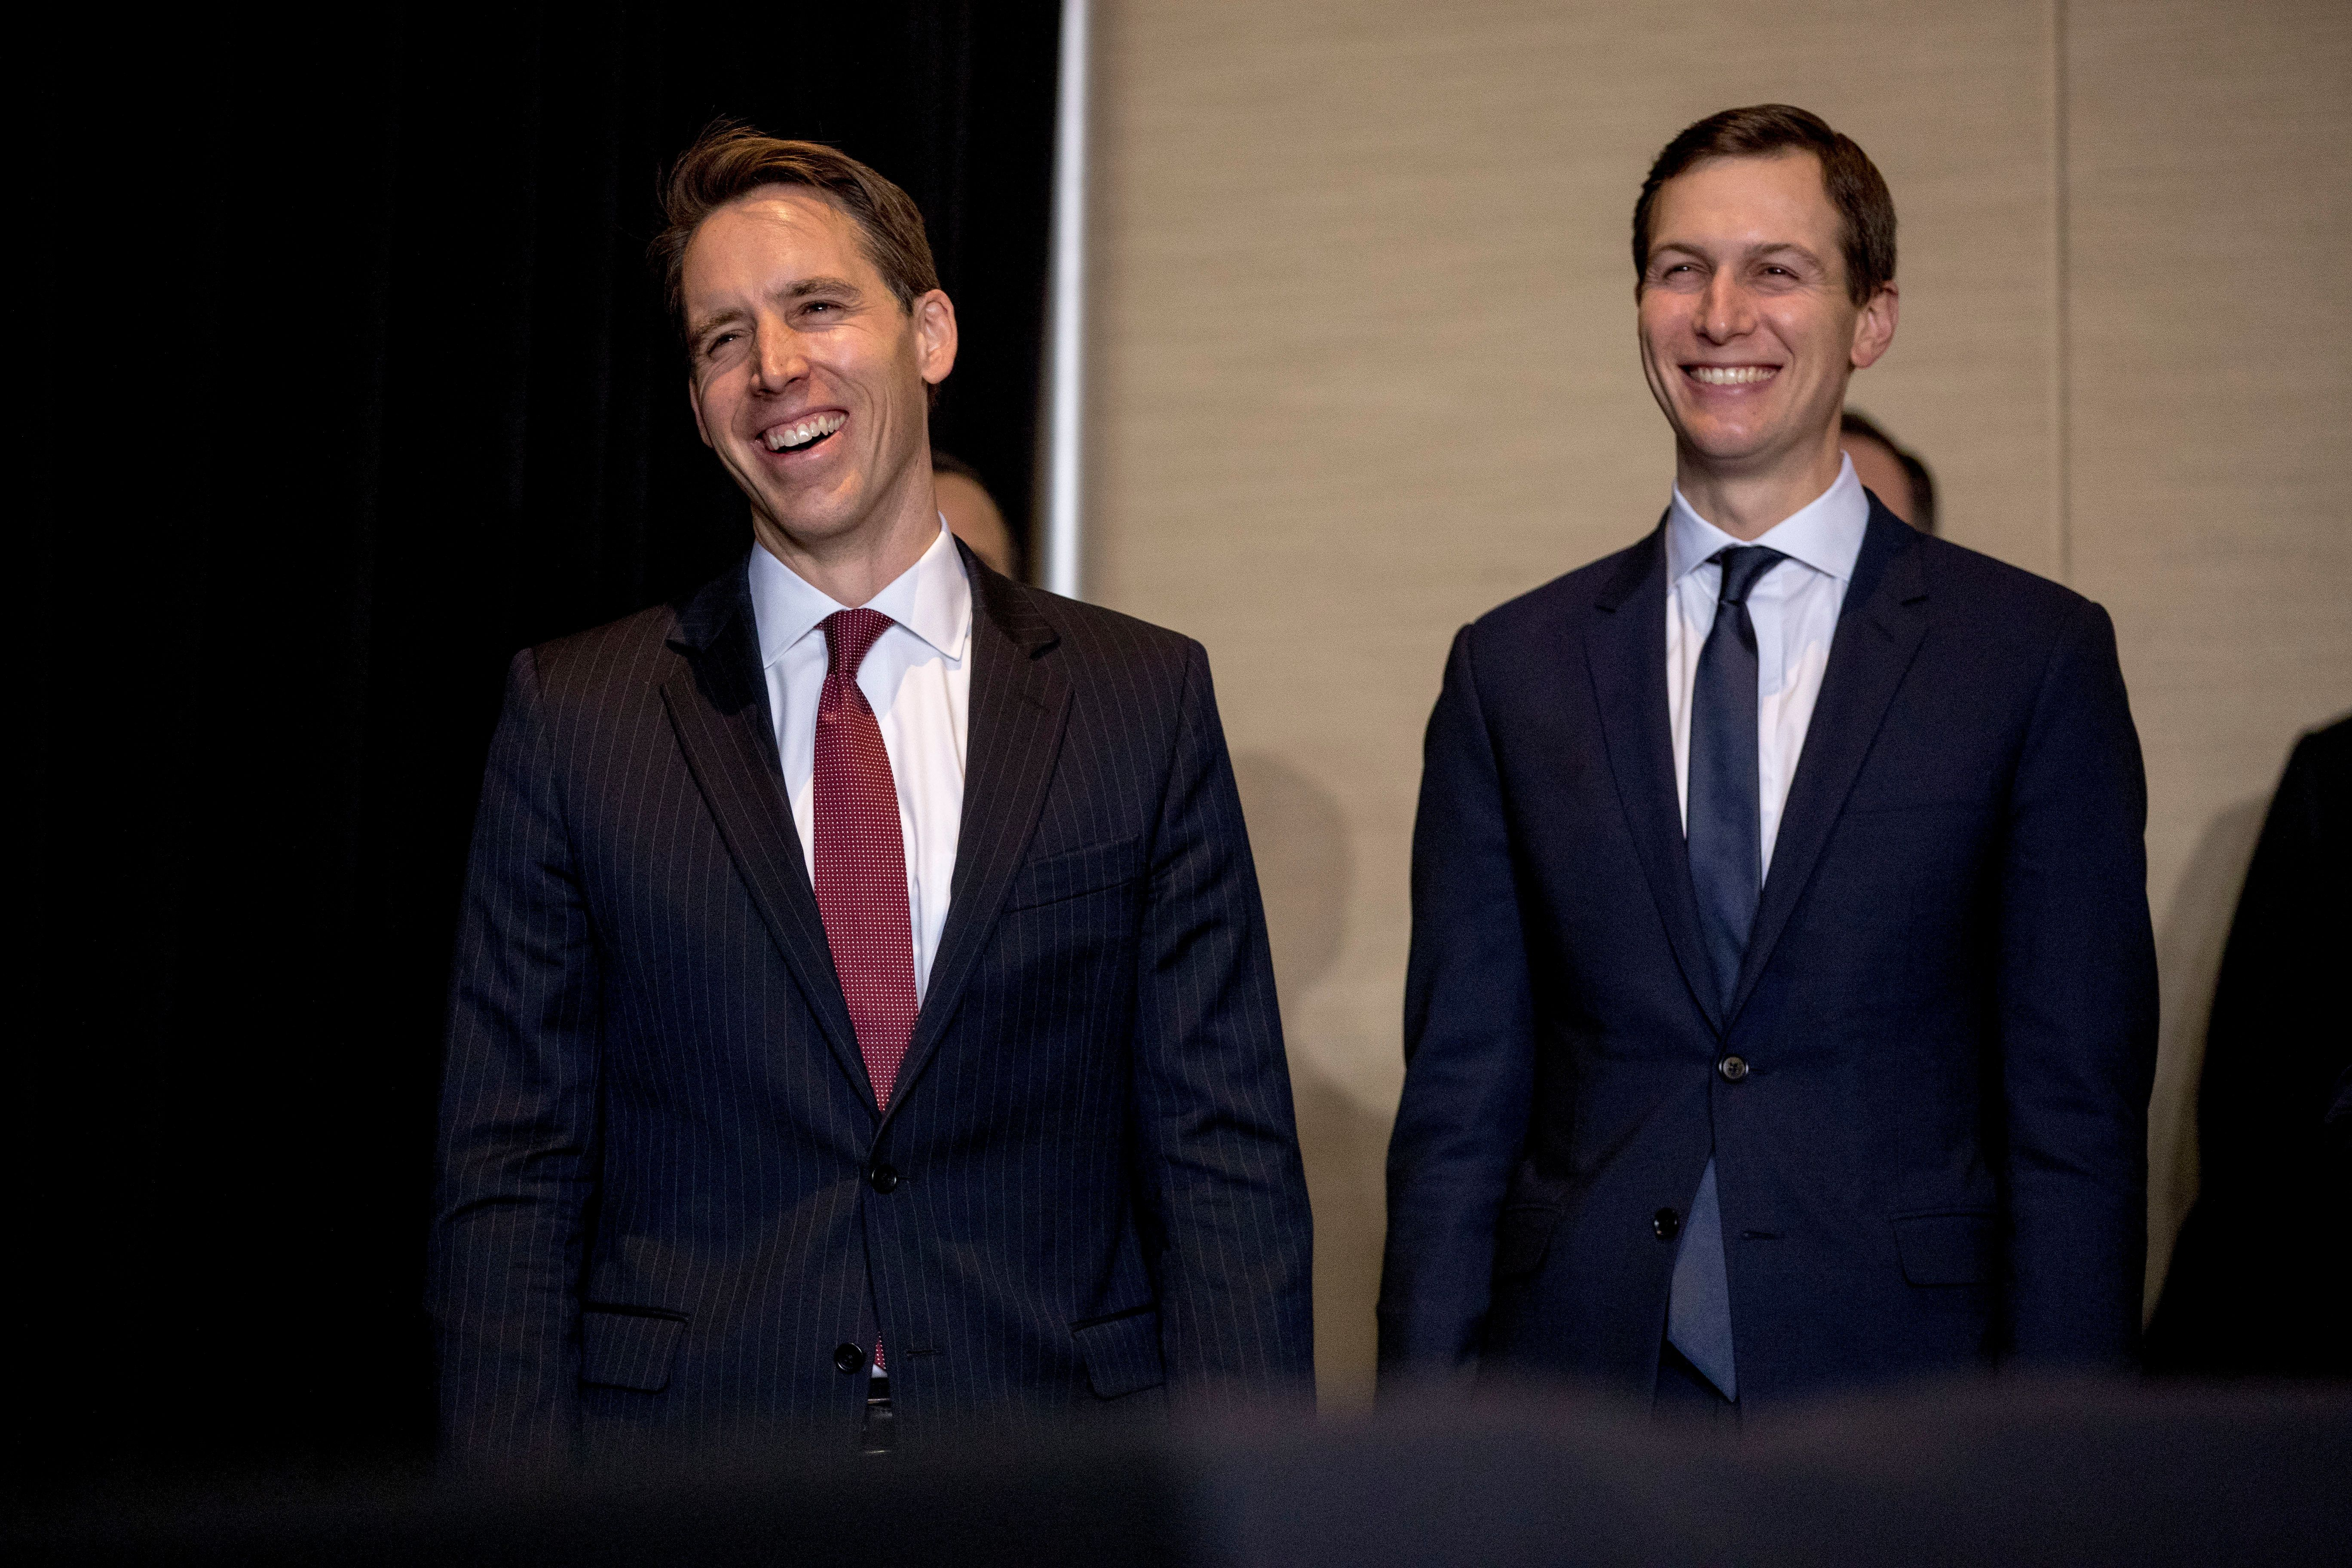 Sen.-elect Josh Hawley, R-Mo., left, accompanied by President Donald Trump's White House Senior Adviser Jared Kushner, right, smiles as he is recognized by President Donald Trump as he speaks the 2018 Project Safe Neighborhoods National Conference at the Westin Kansas City at Crown Center in Kansas City, Mo., Friday, Dec. 7, 2018. (AP Photo/Andrew Harnik)